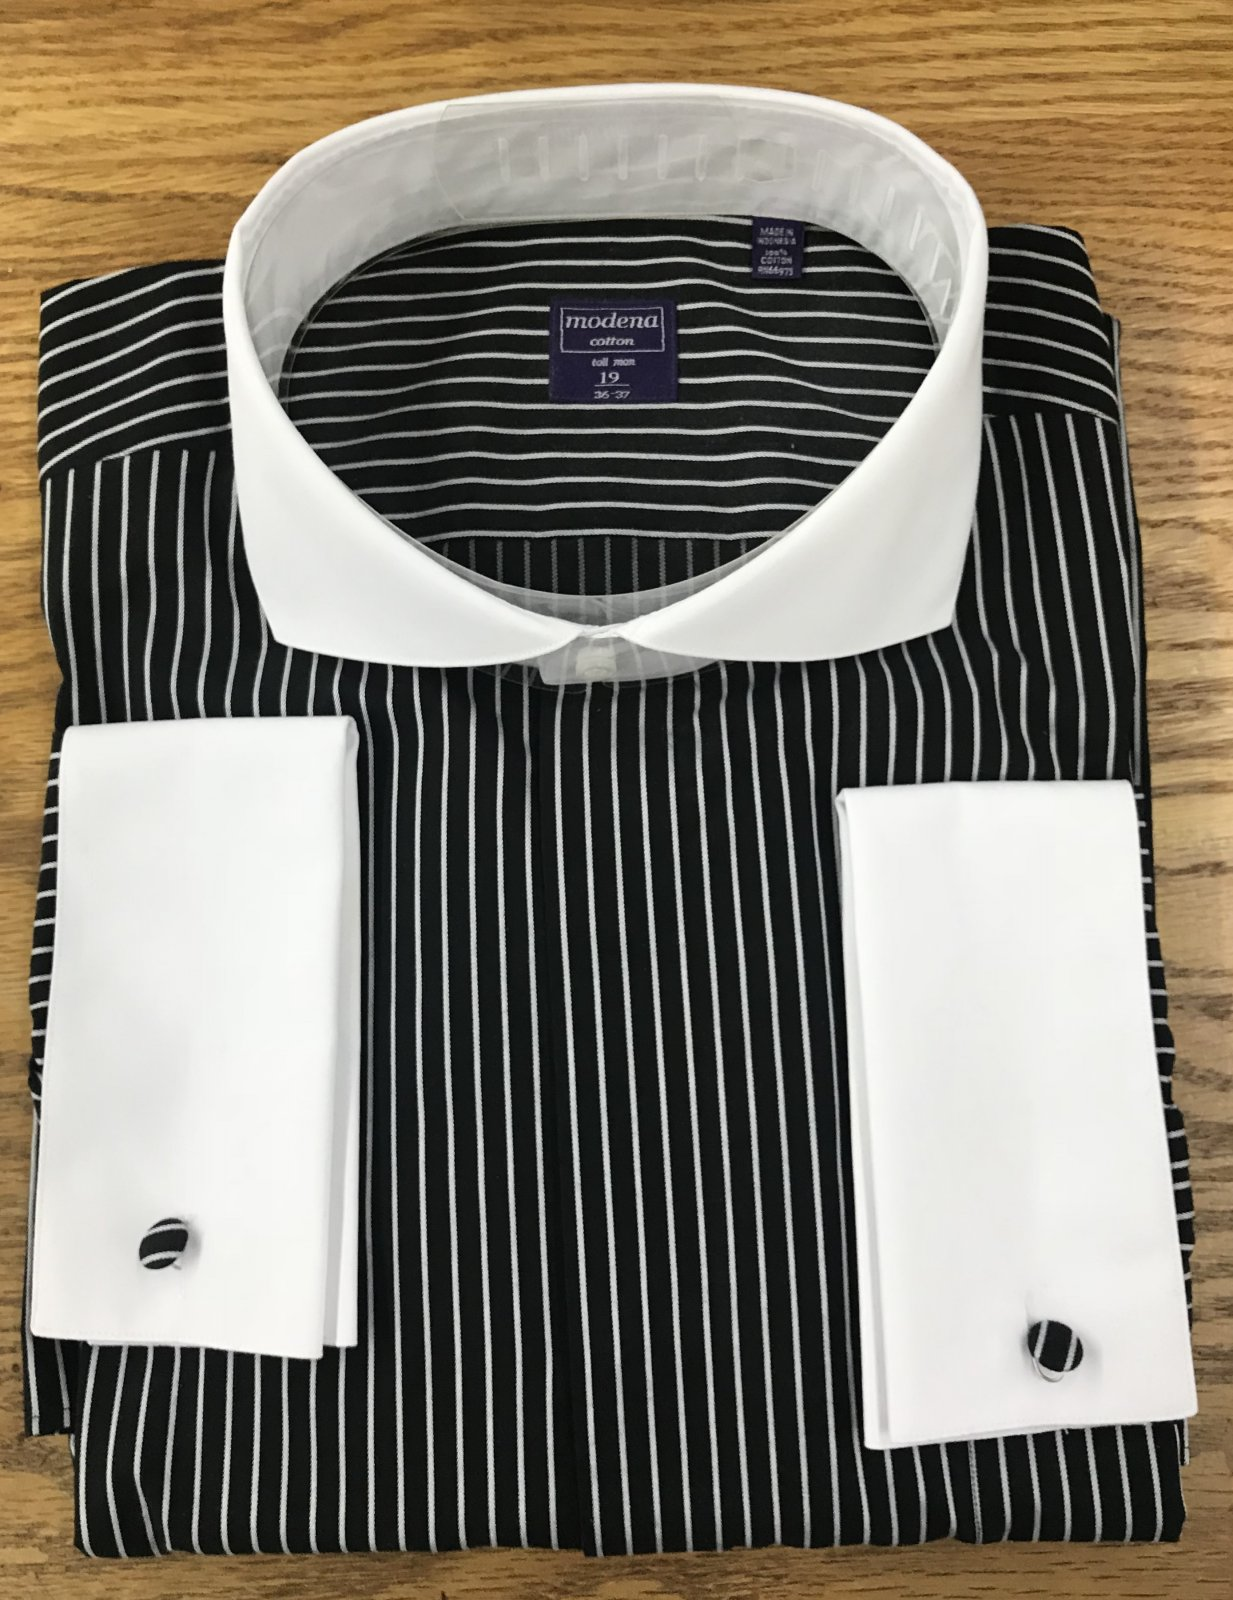 Modena Black/White French Cuff Shirt